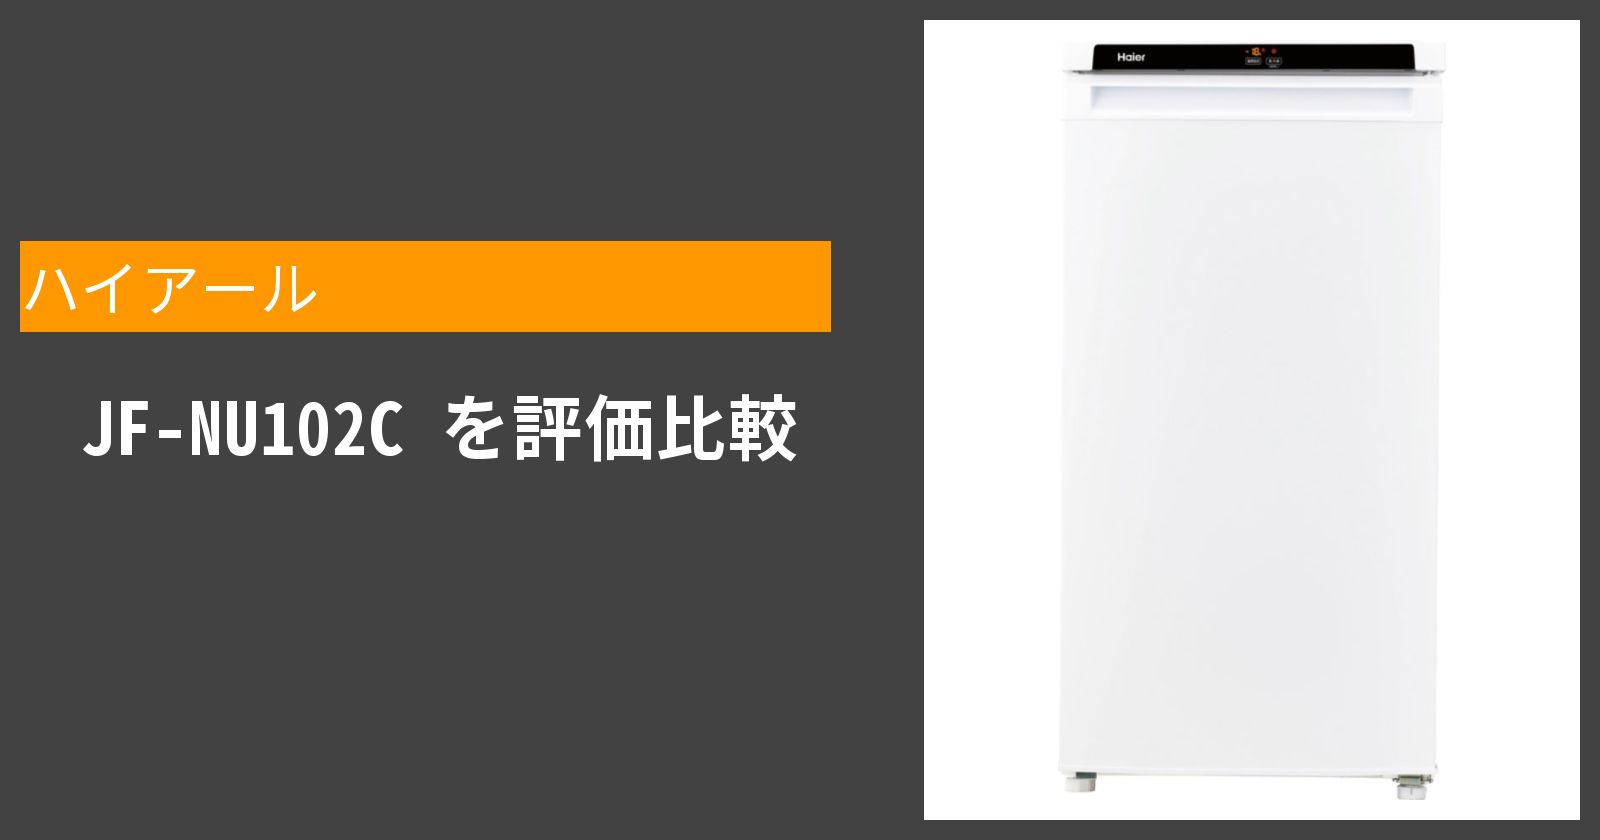 JF-NU102Cを徹底評価